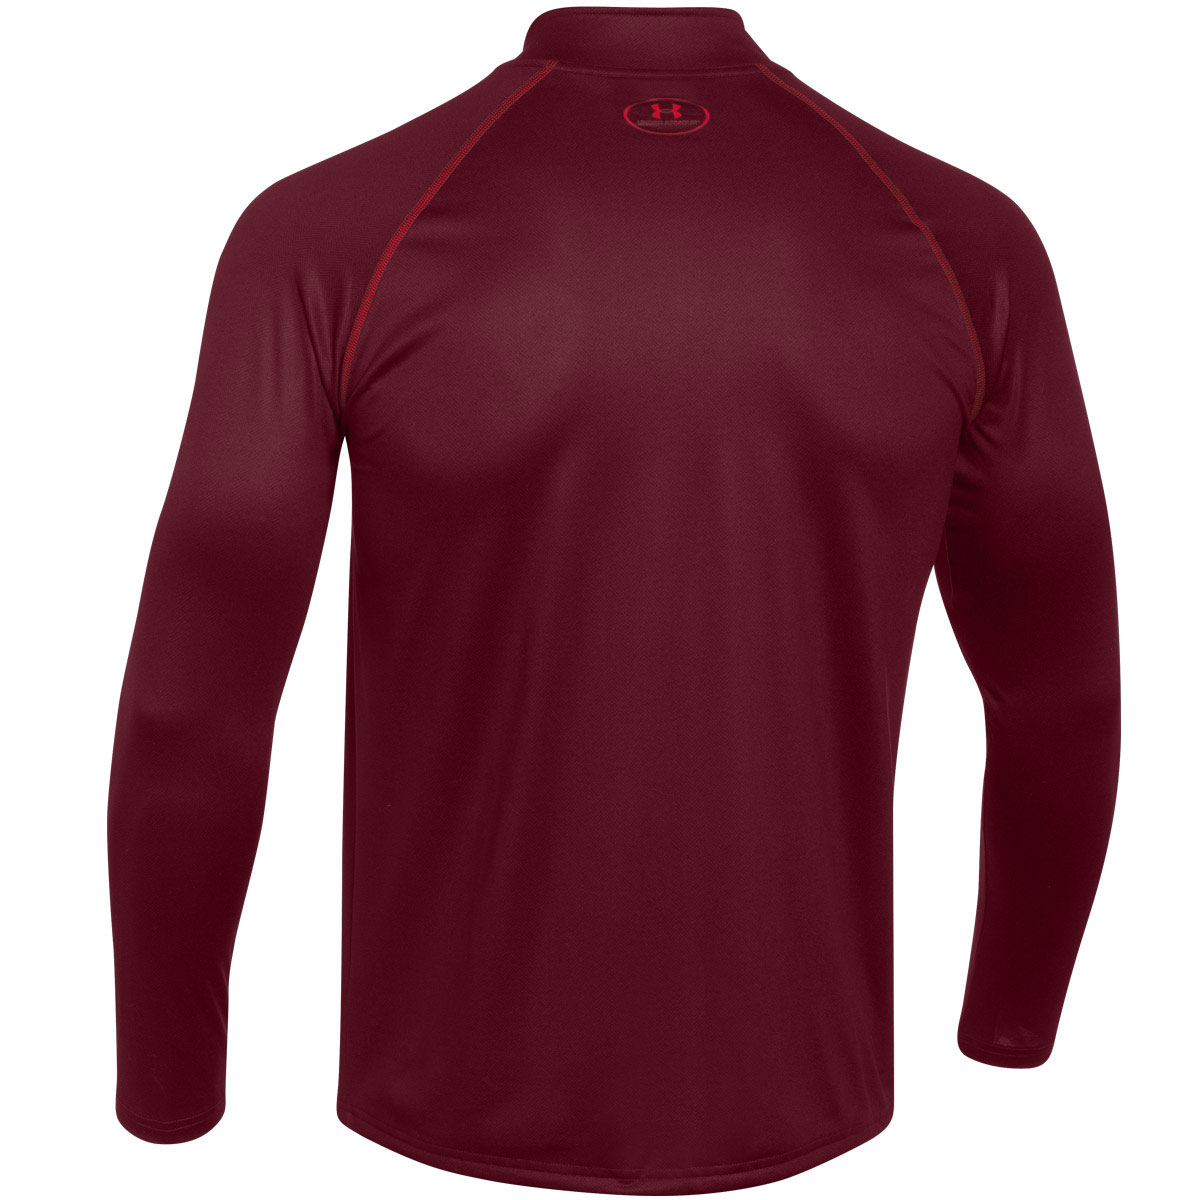 Under-Armour-Mens-UA-Tech-1-4-Zip-Long-Sleeve-Top-Workout-Layer-27-OFF-RRP thumbnail 46